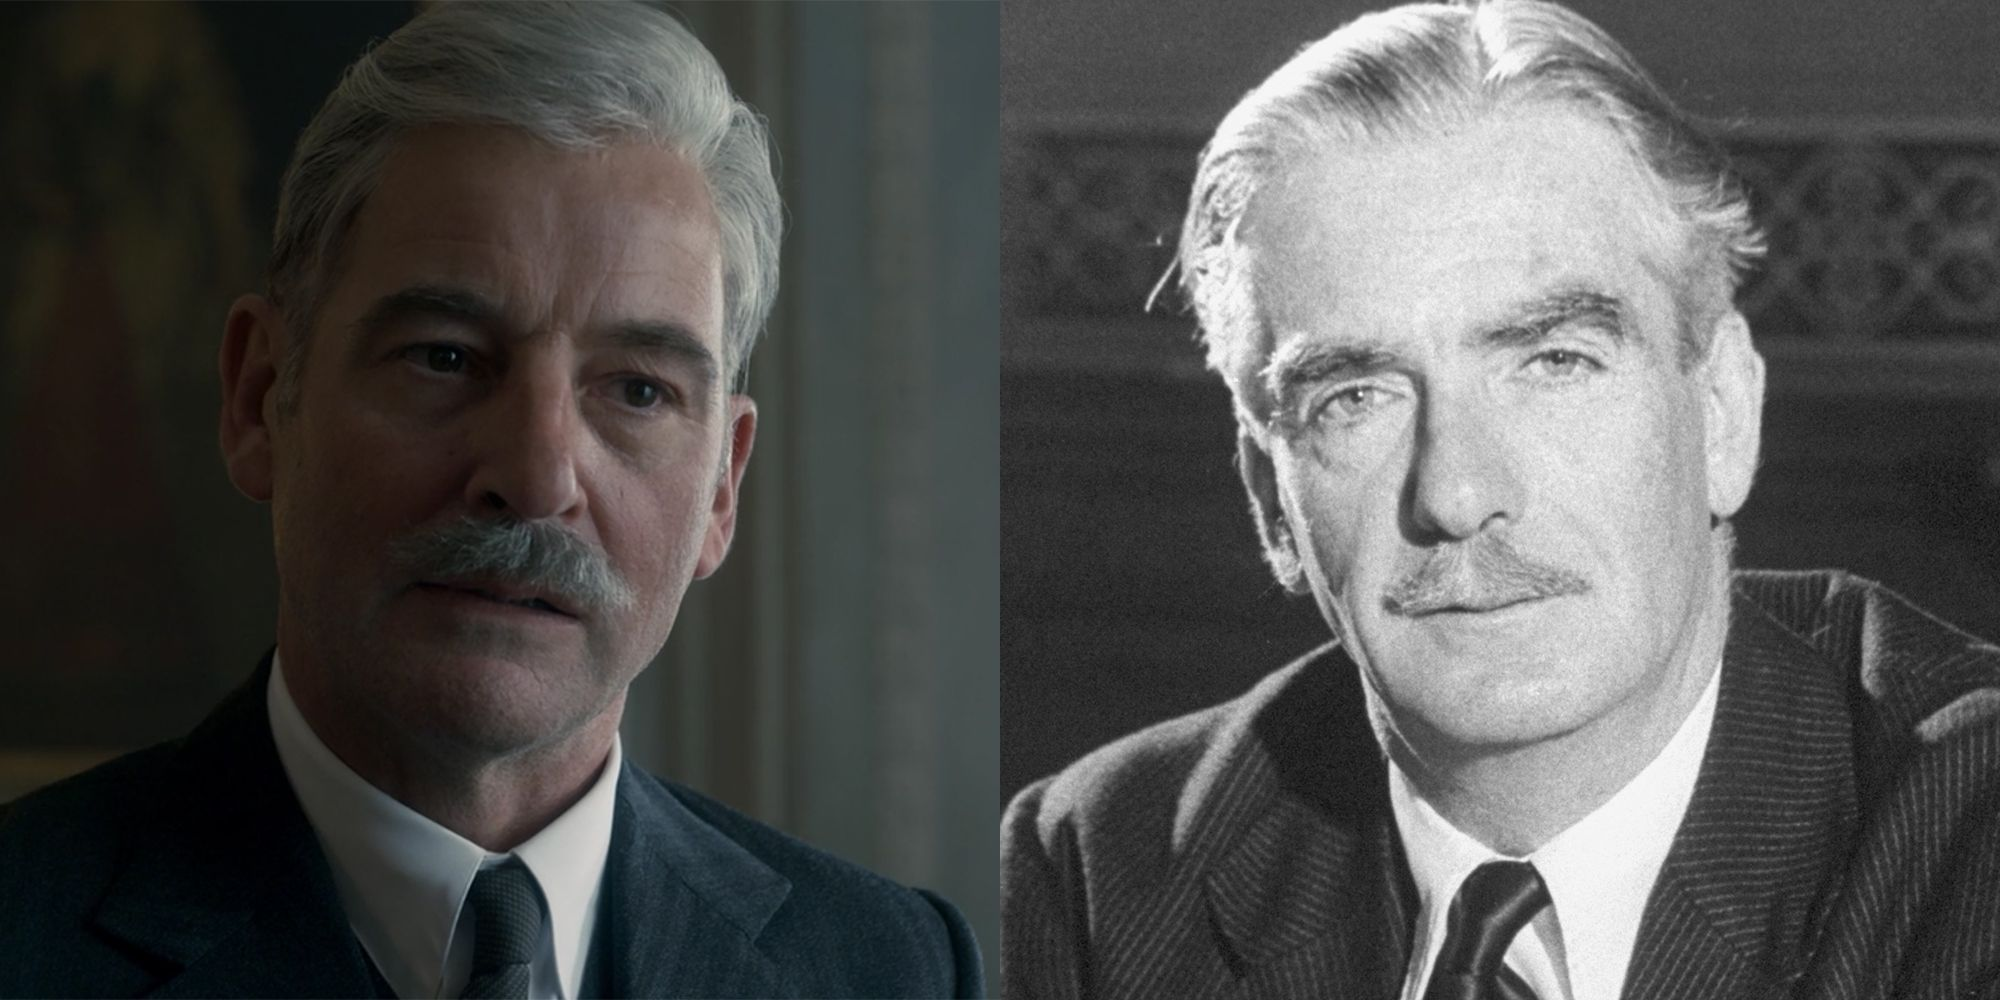 Anthony Eden (seasons one and two)